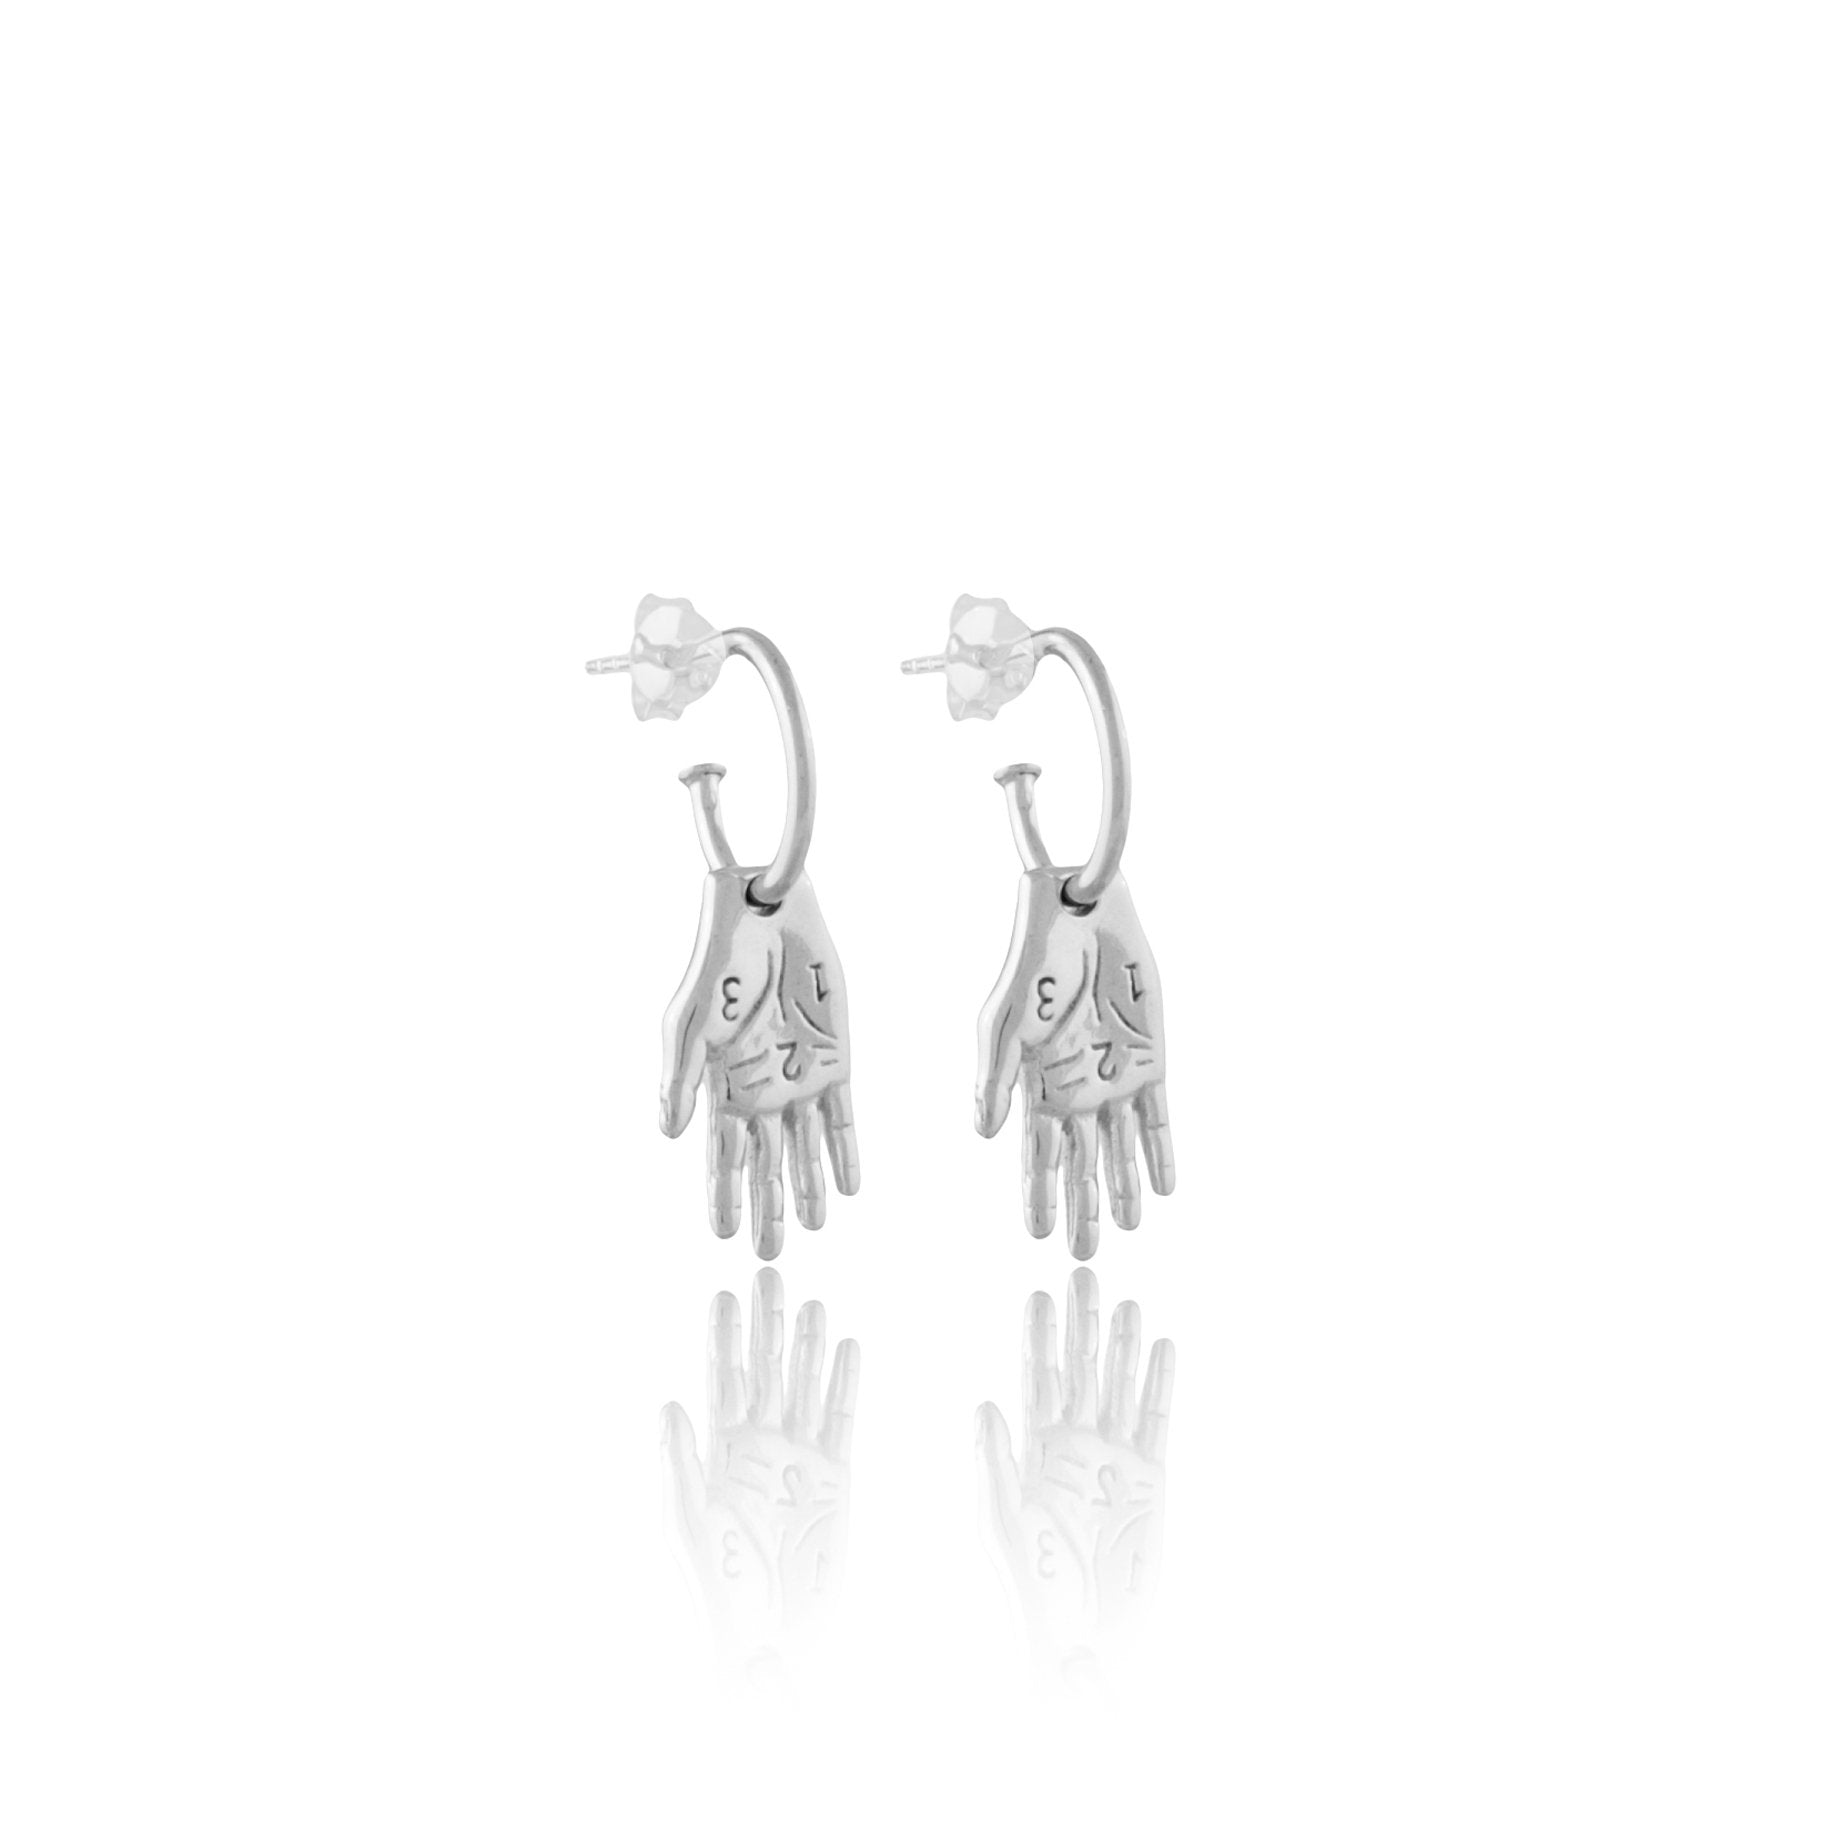 Mano Amiga Silver hand Earrings from Frida Kahlo Inspired jewellery